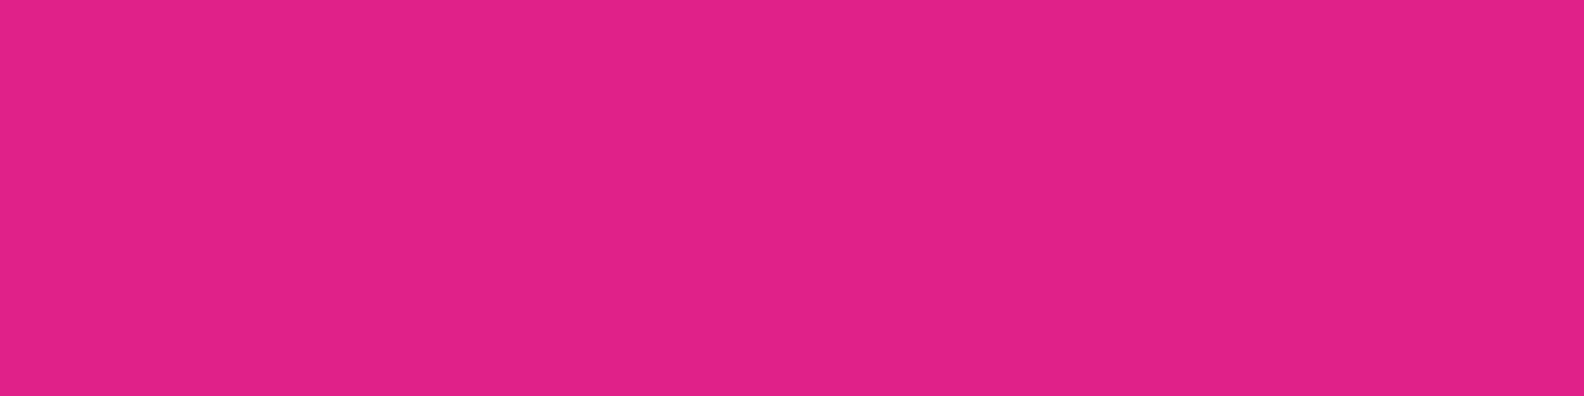 1584x396 Barbie Pink Solid Color Background